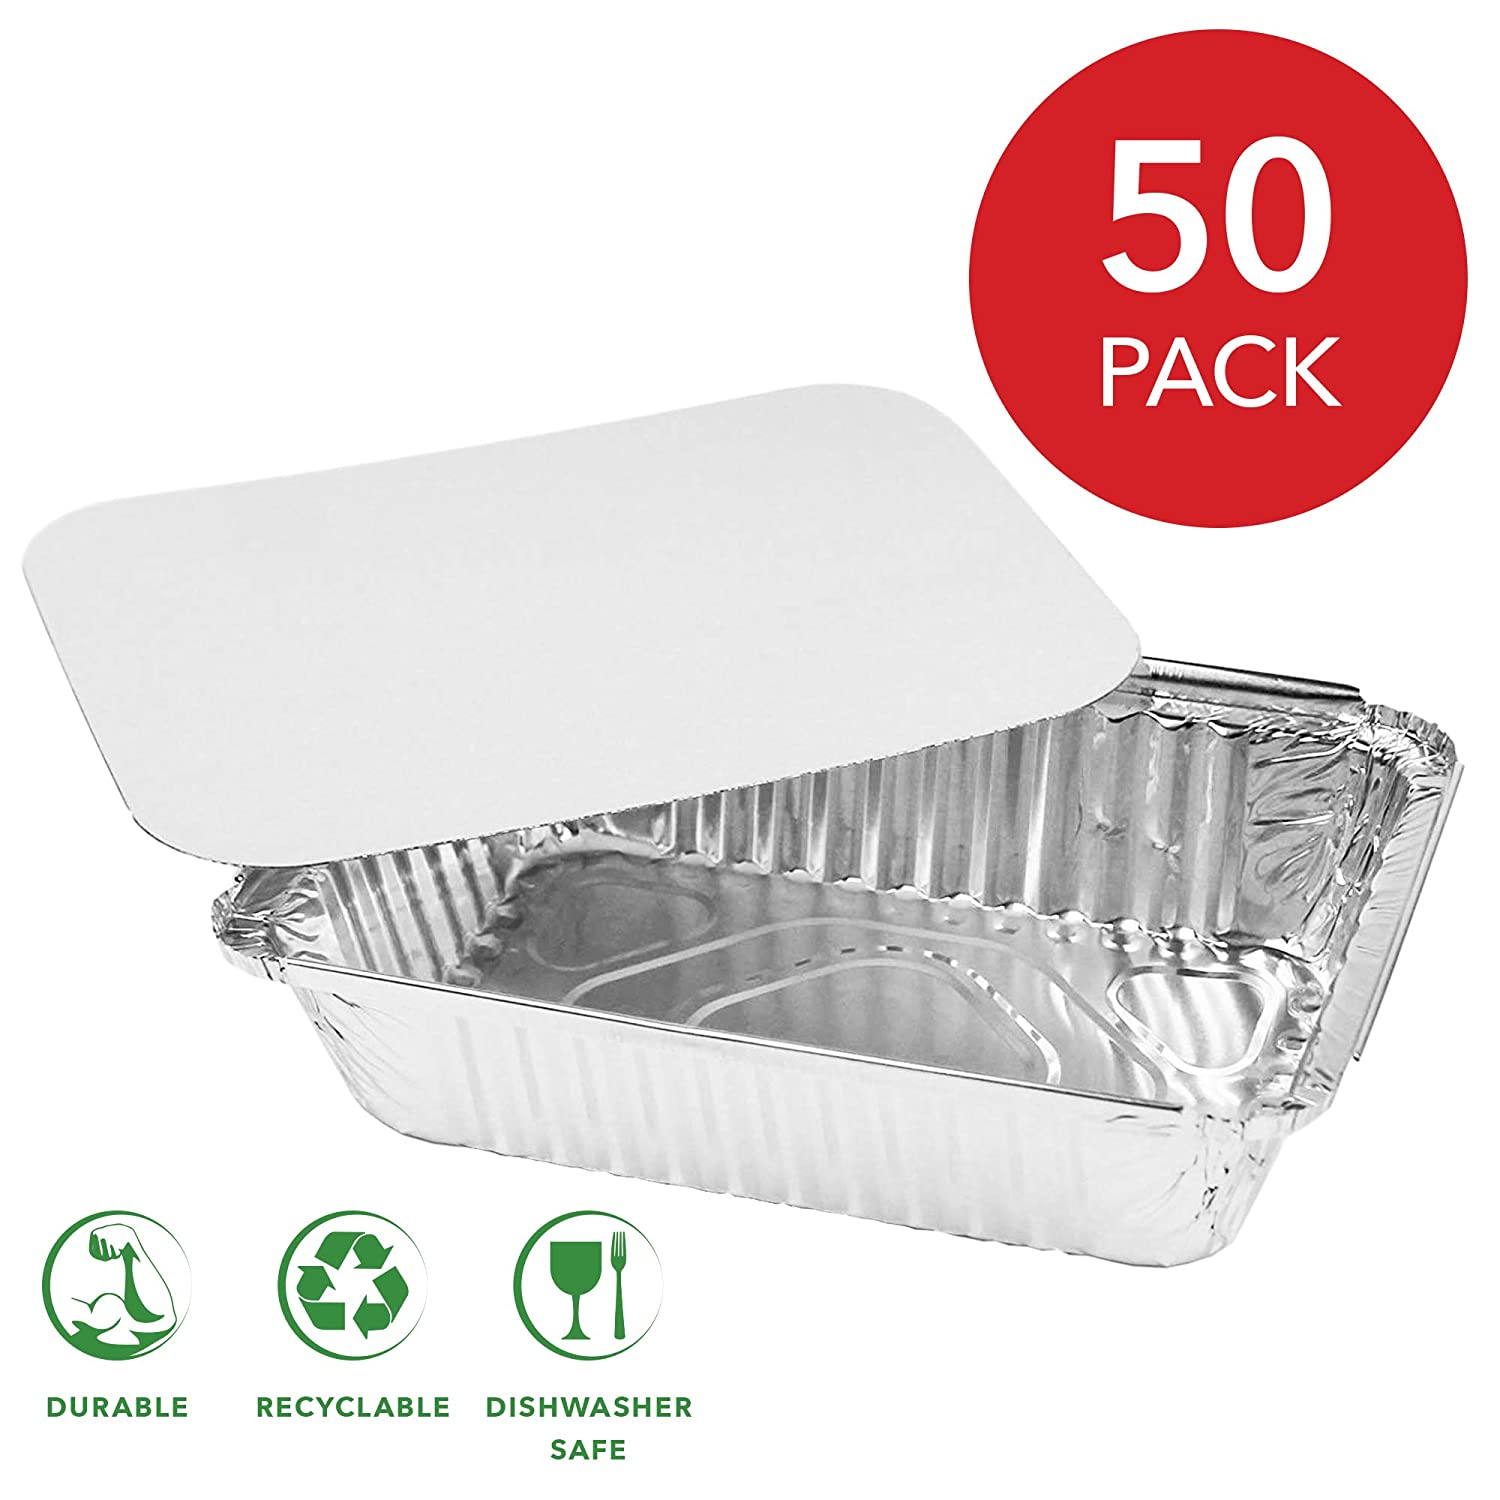 "50 Pack Aluminum Foil Oblong Pans with Cardboard Lid Covers | Standard Size Disposable Aluminum Foil 2Lb Tin Pan Food Storage Containers for Cooking, Baking, Meal Prep, Takeout - 8.5"" x 6"""